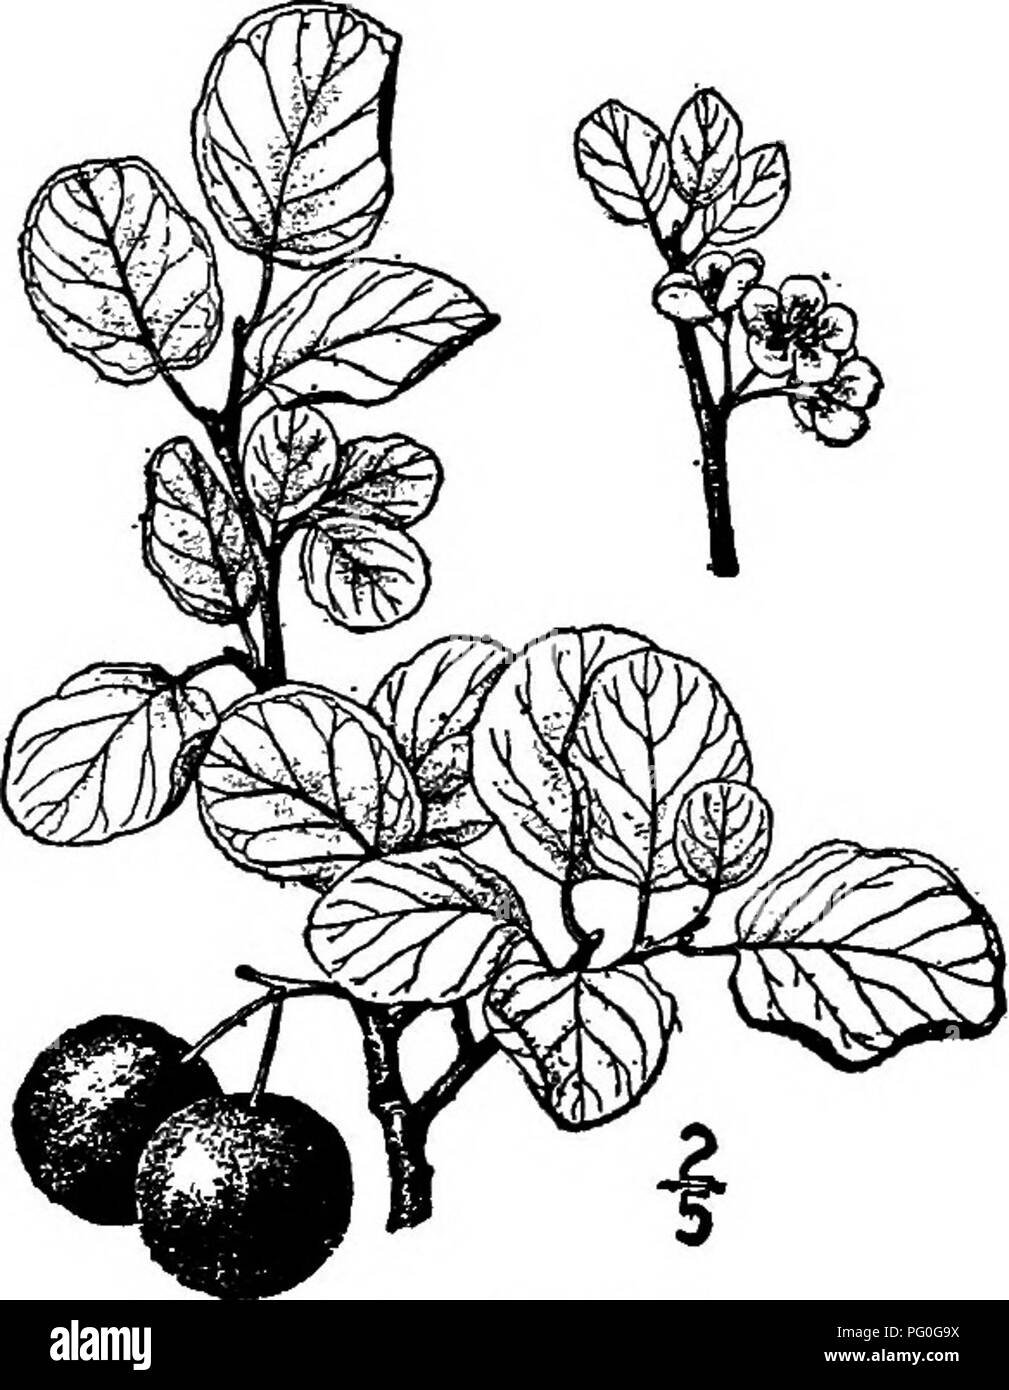 . North American trees : being descriptions and illustrations of the trees growing independently of cultivation in North America, north of Mexico and the West Indies . Trees. 492 The Plums and Cherries The Woolly-leaf plum is a variety of this, or perhaps a distinct species, with conspicuously hairy leaves and twigs, occurring west of the Alleghany Mountains, principally in the Gulf States, and known as Prunus americana lanata Sudworth. 7. PACIFIC PLUM—Prunus subcordata Bentham A low branching tree, or usually a shrub, on dry rocky hills of southern Oregon to middle California, reaching a maxi Stock Photo